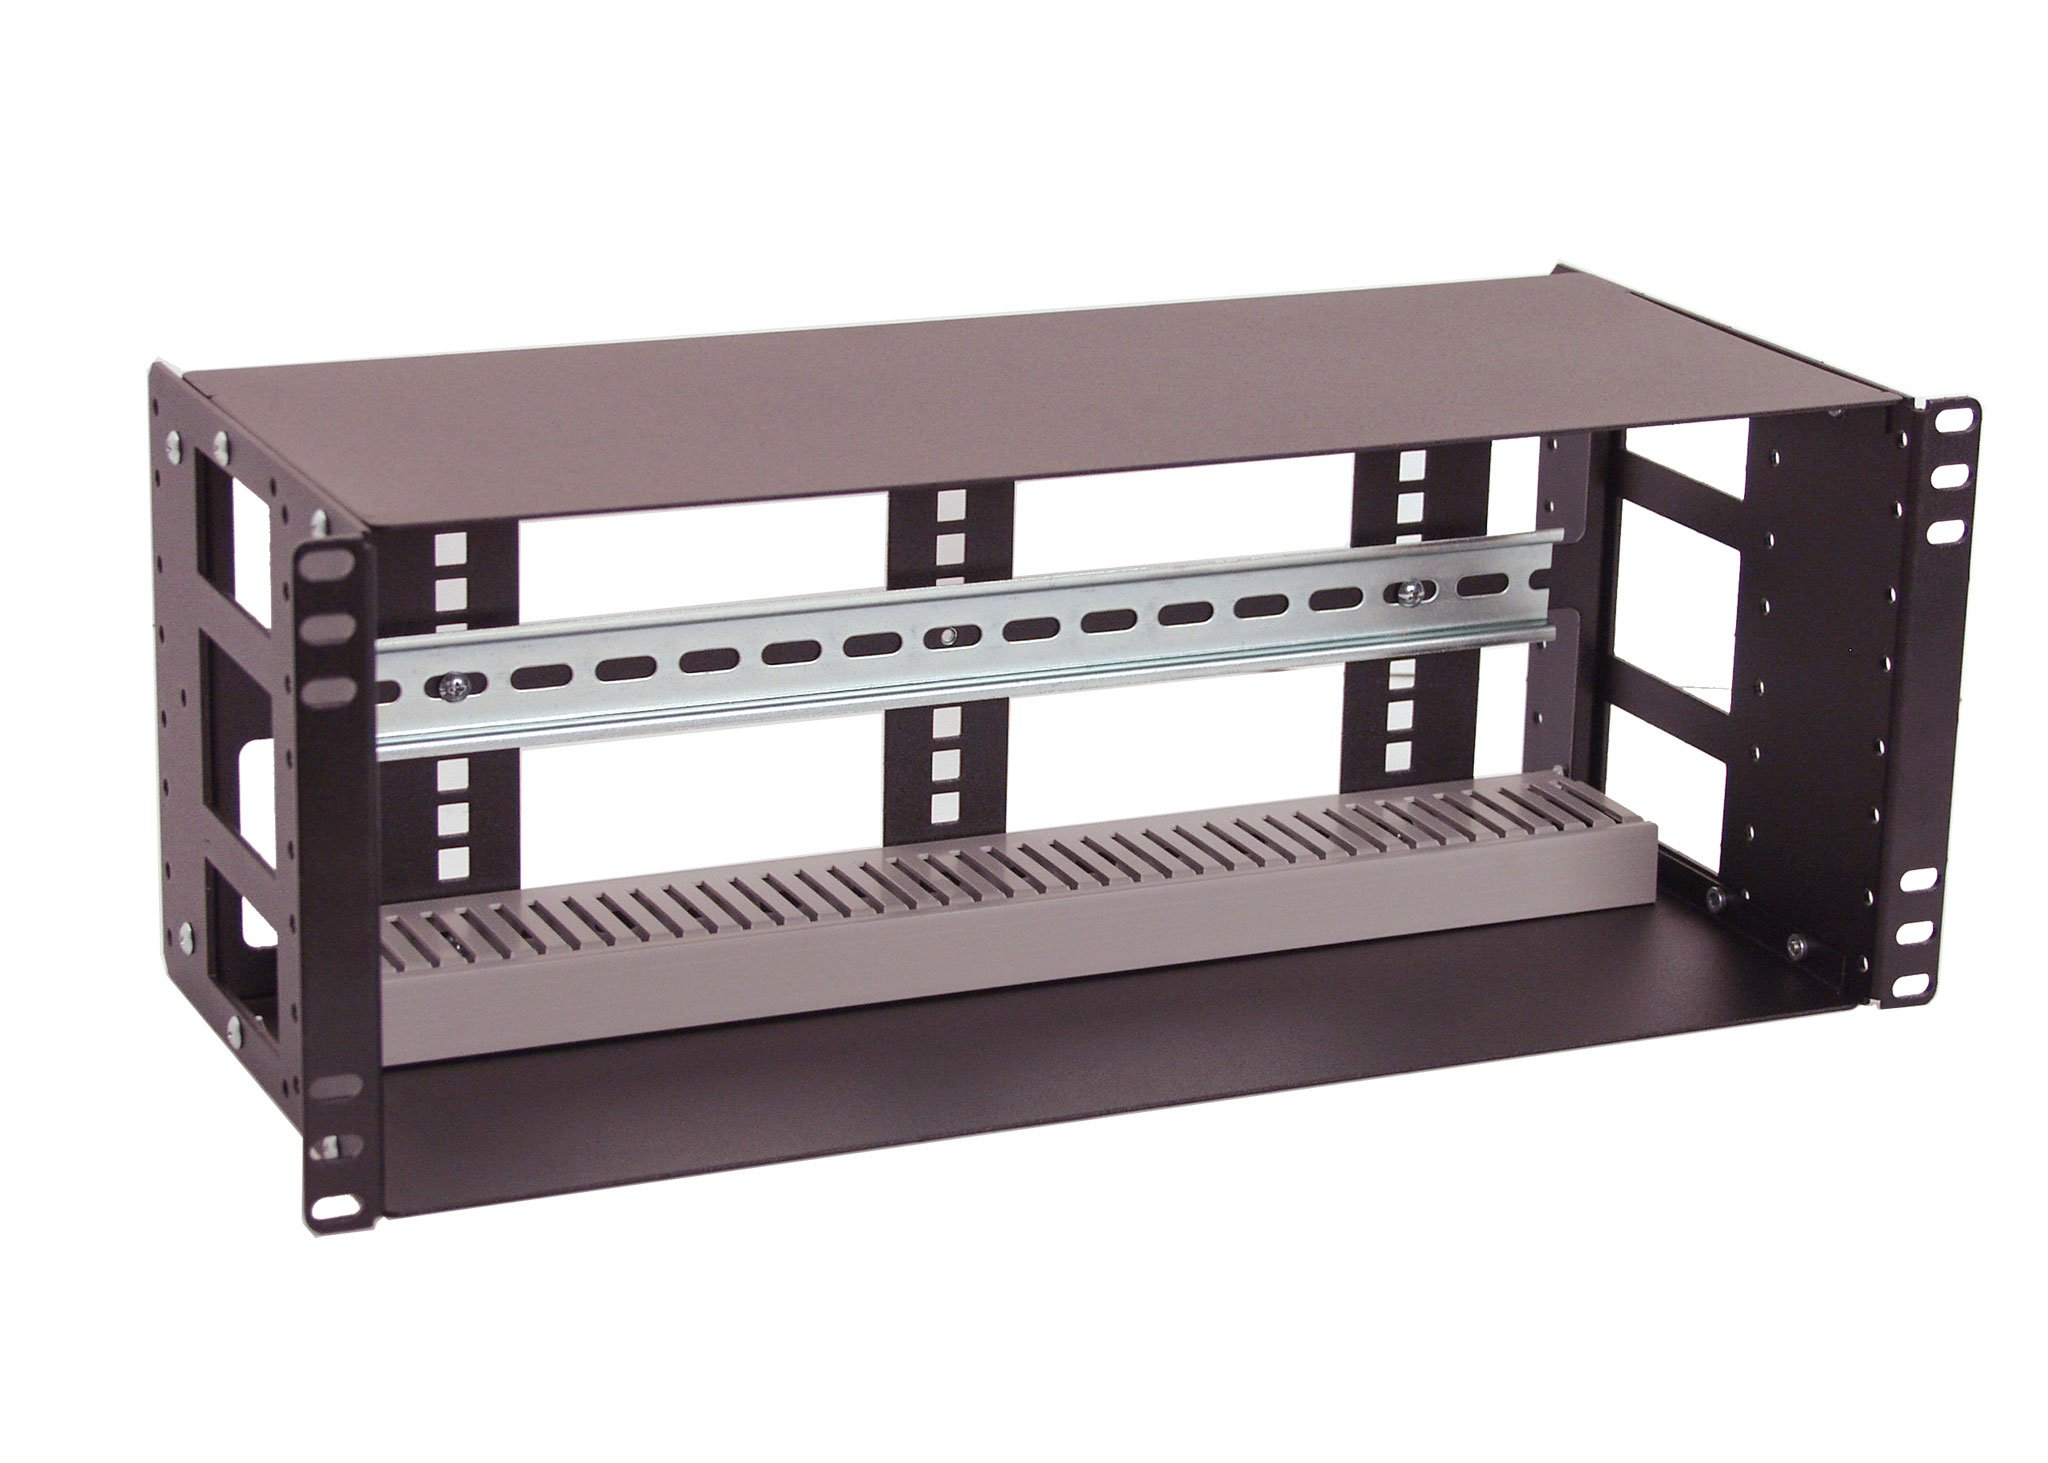 IRP208DB-4U Fully Enclosed Rackmount 4U Compact 8'' Deep Industrial Din Rail Panel for 19'' 2-Post relay rack or 4-Post Rack Cabinet